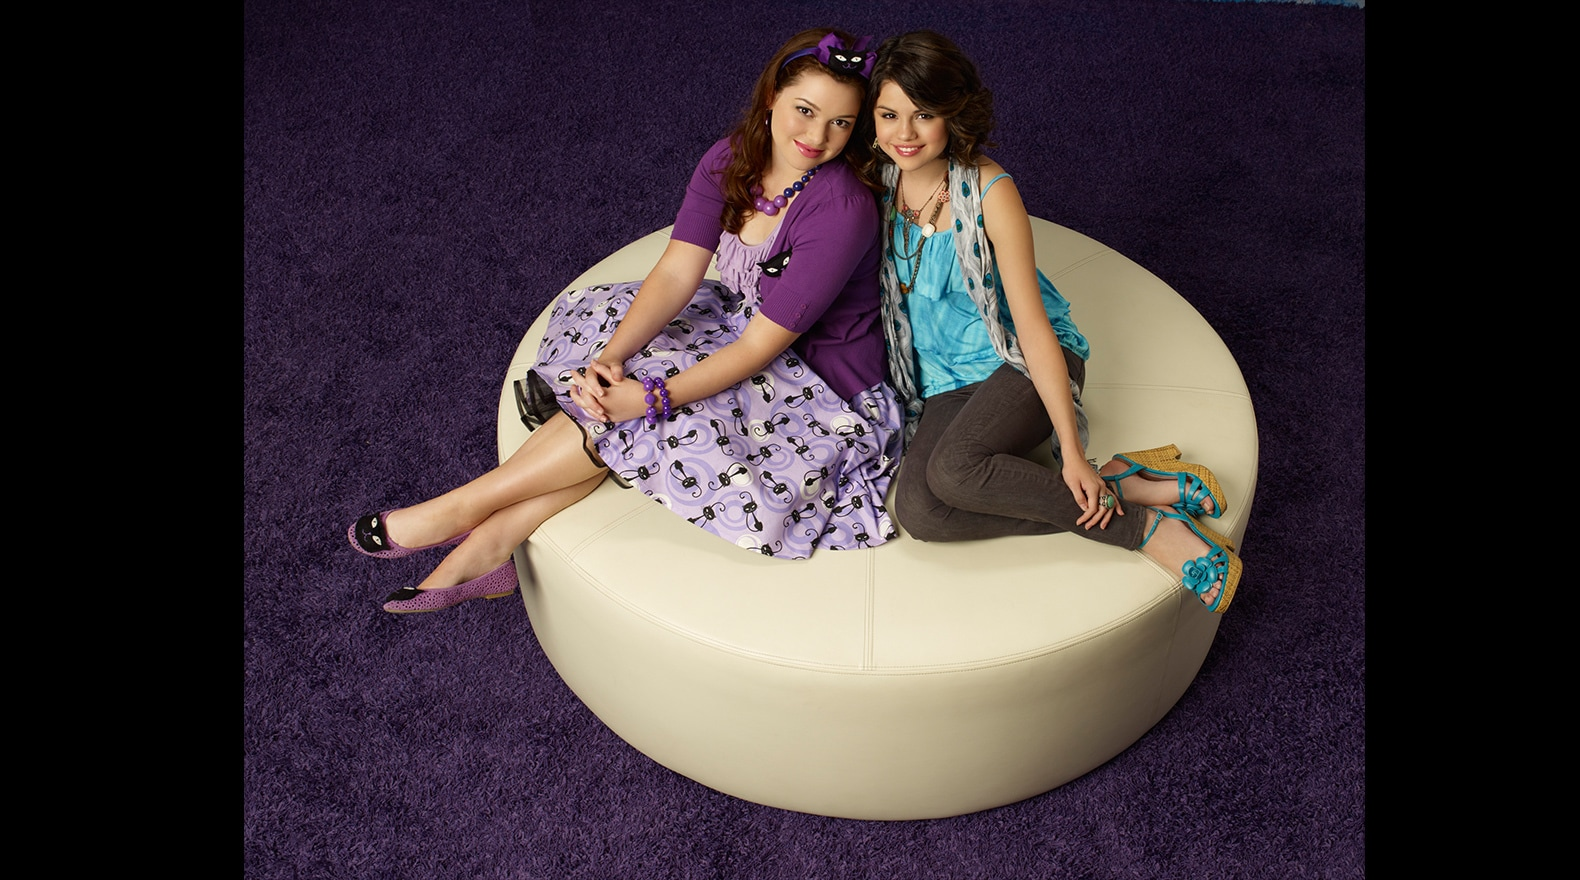 wizards of waverly place gallery disney channel uk